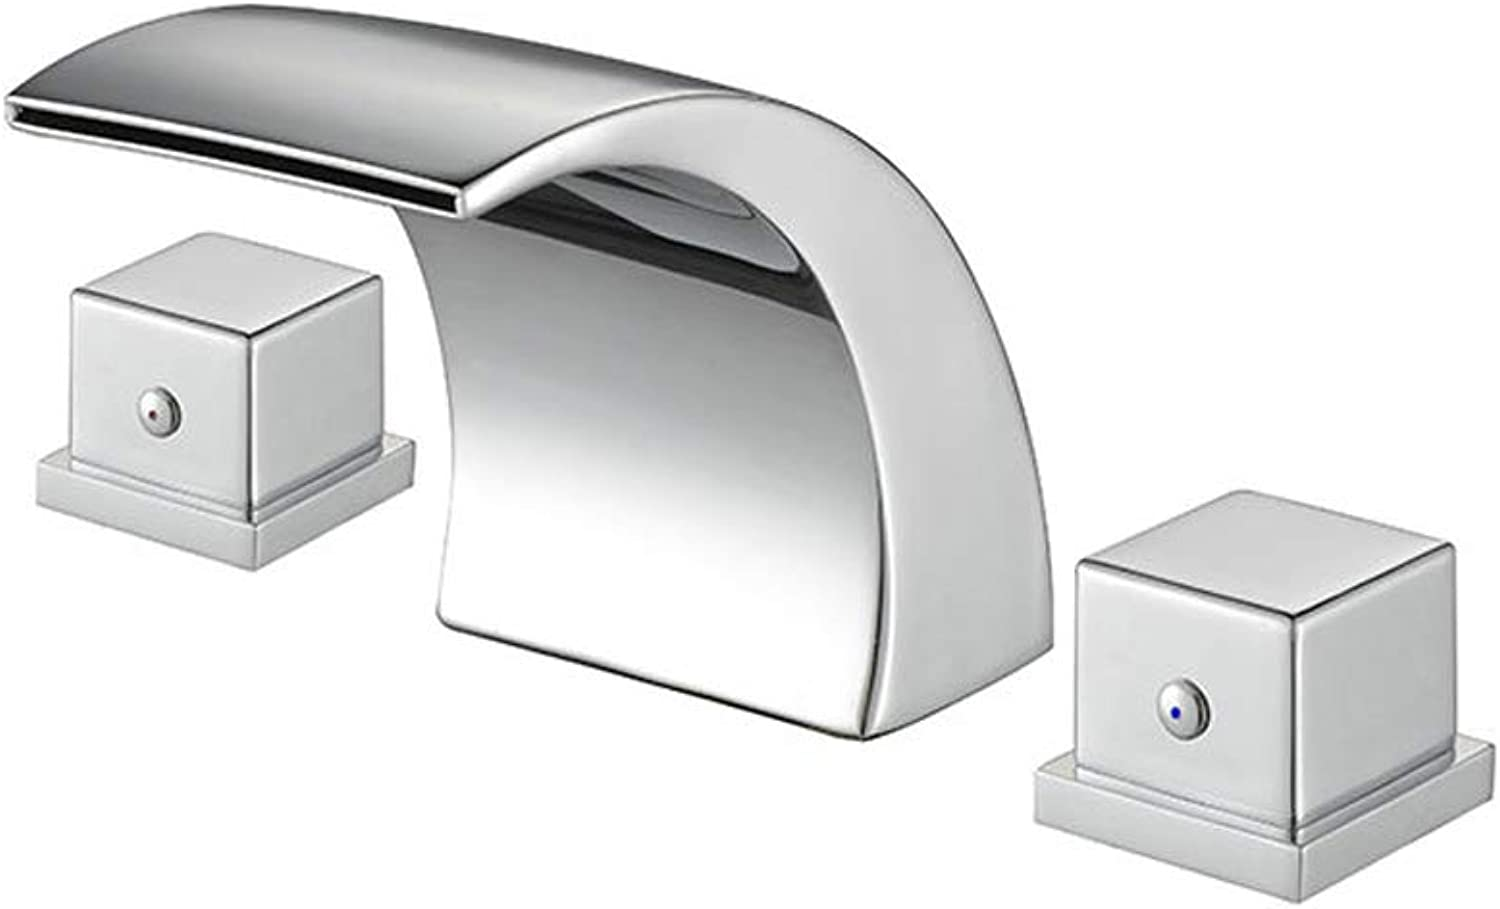 Jueven Temperature Controlled Discoloration Waterfall LED colors Changing Widespread Widespread Widespread Bathroom Sink Faucet 2 Handles,Chrome a21383